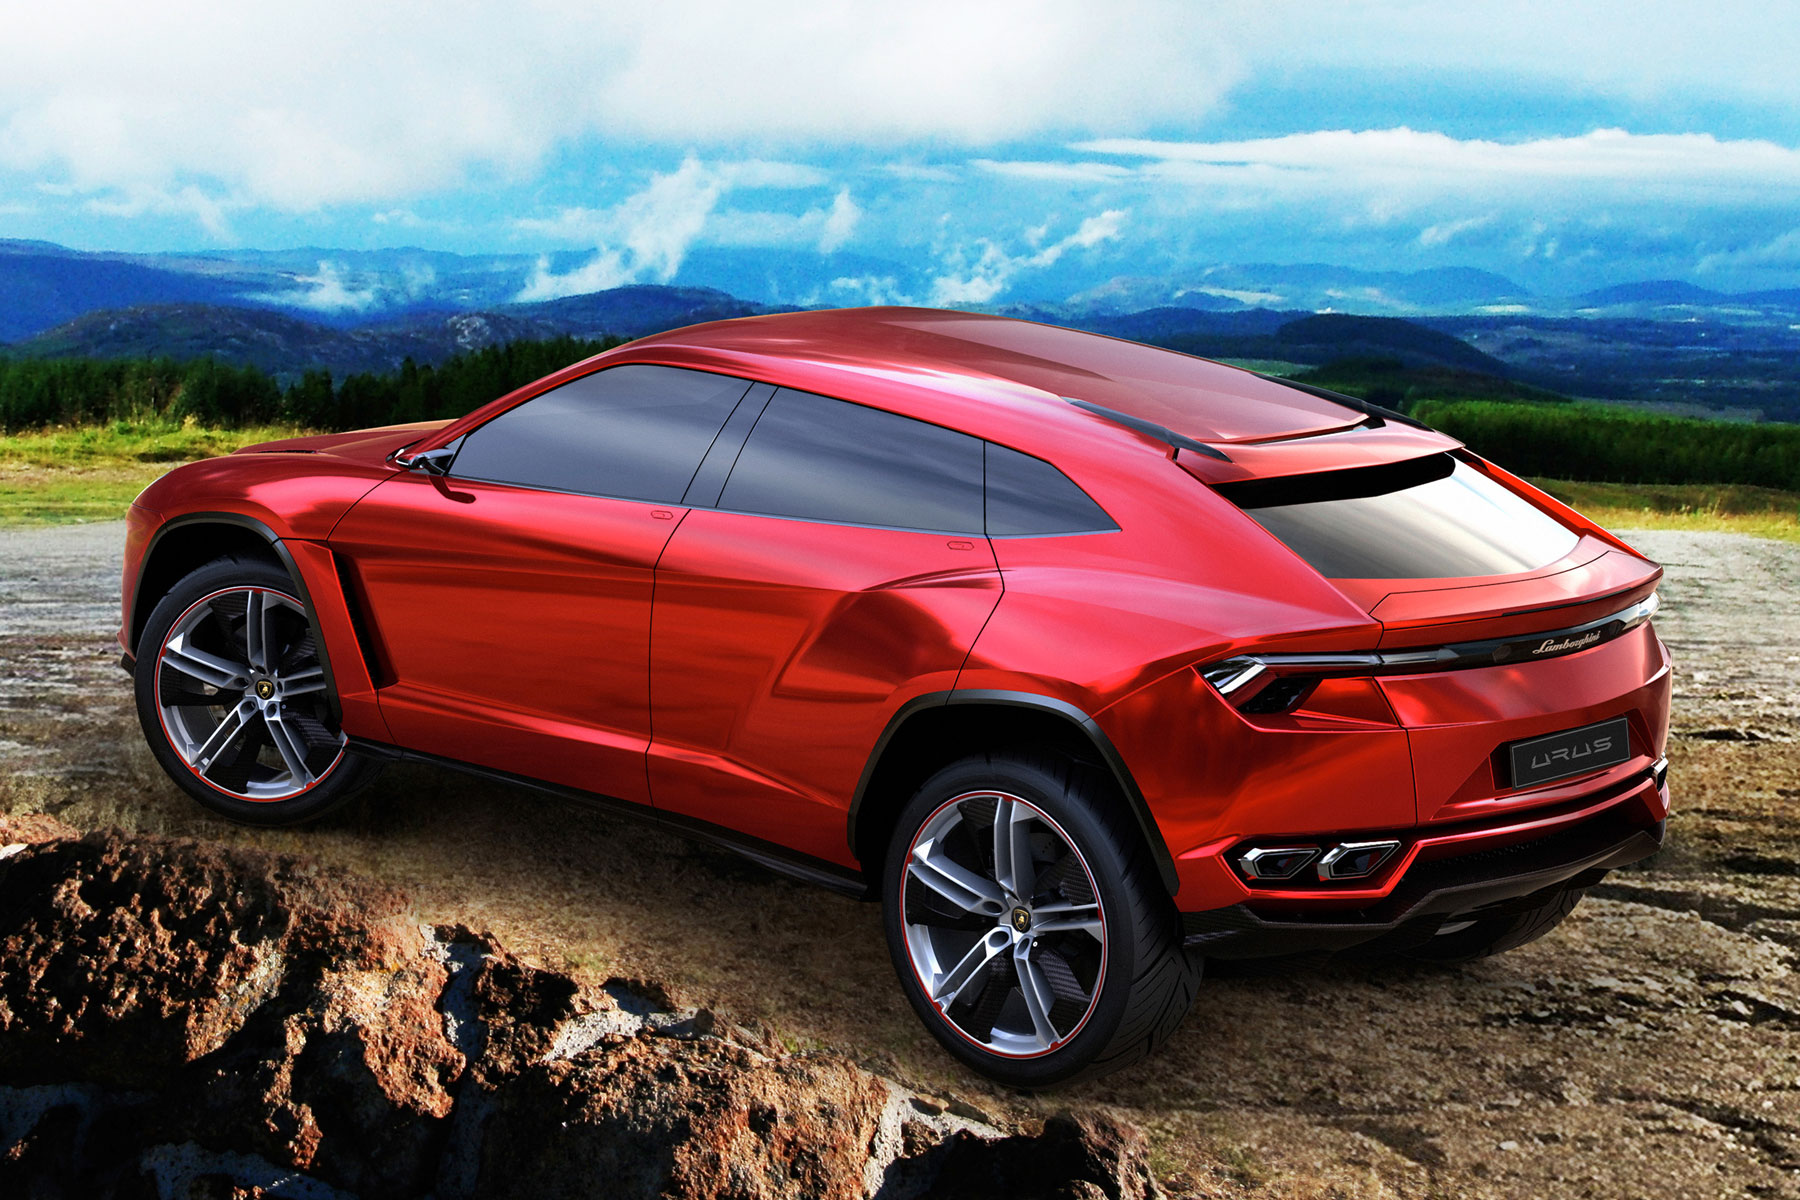 New Lamborghini SUV likely to share a platform with Audi Q7 and Bentley Bentayga.